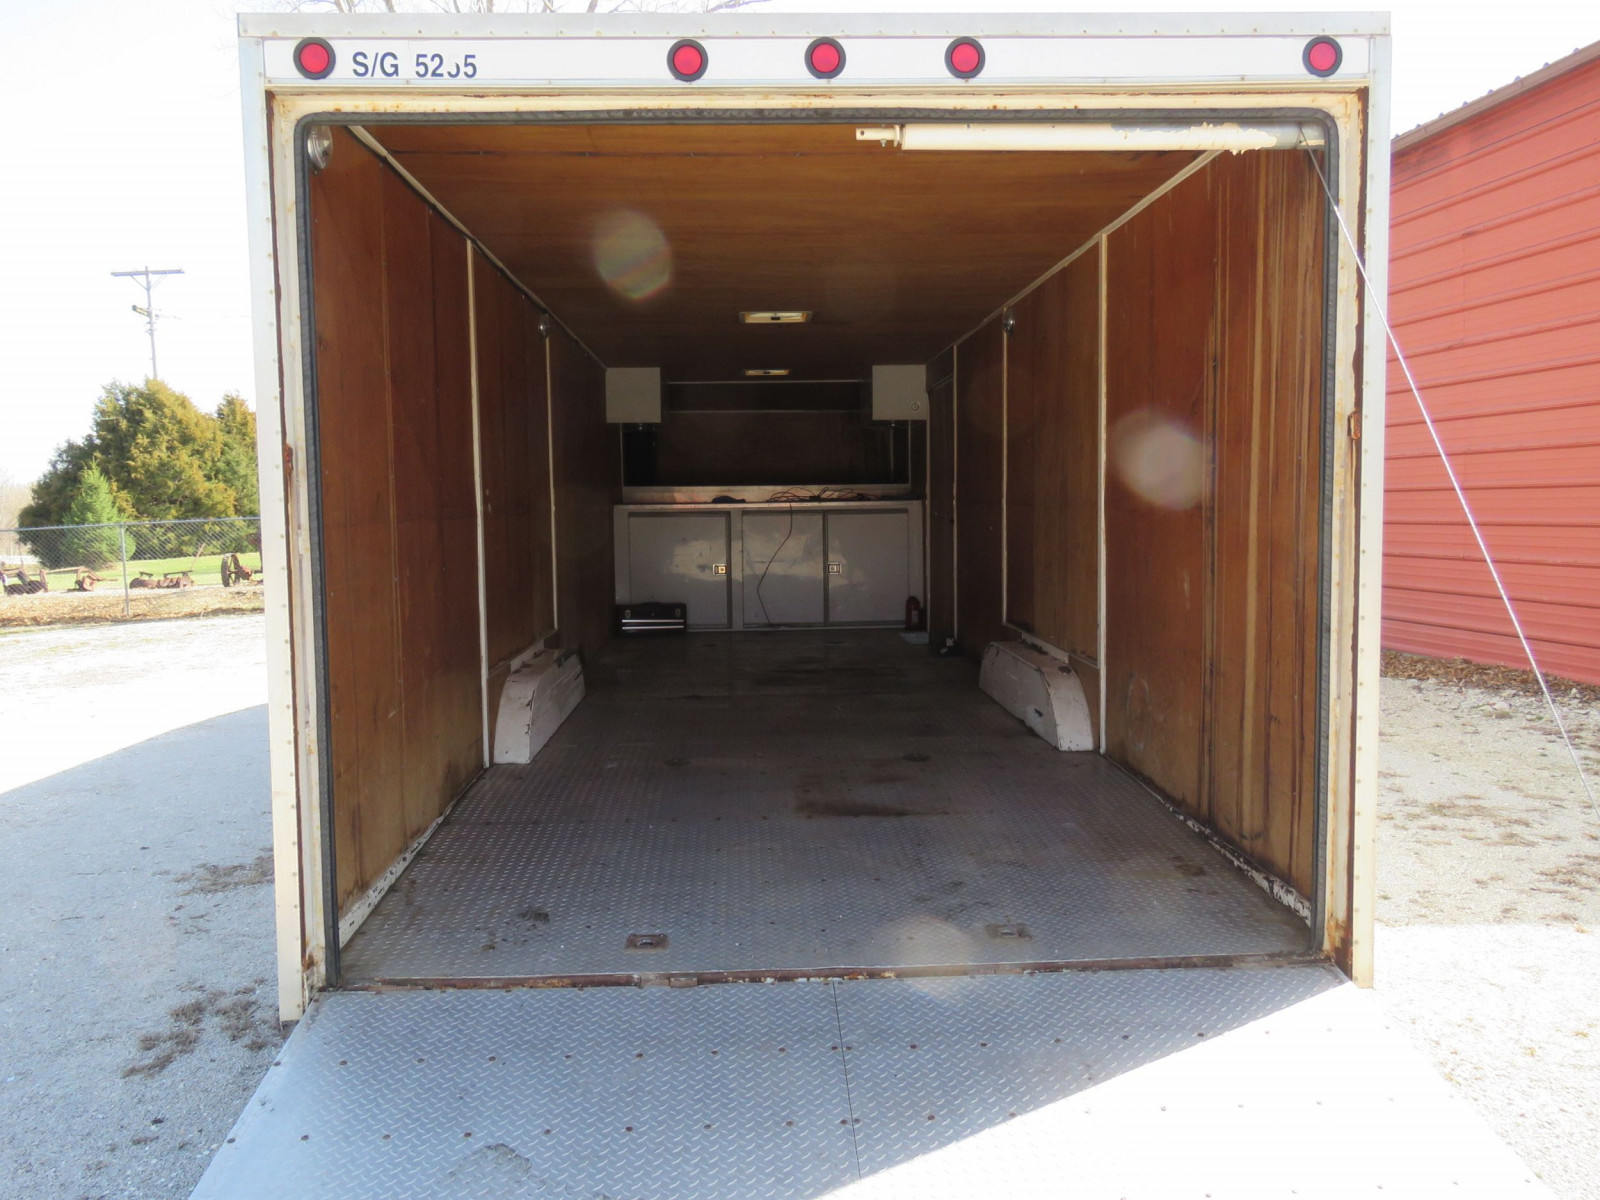 1994 S&S Welding Enclosed Trailer - Image 4